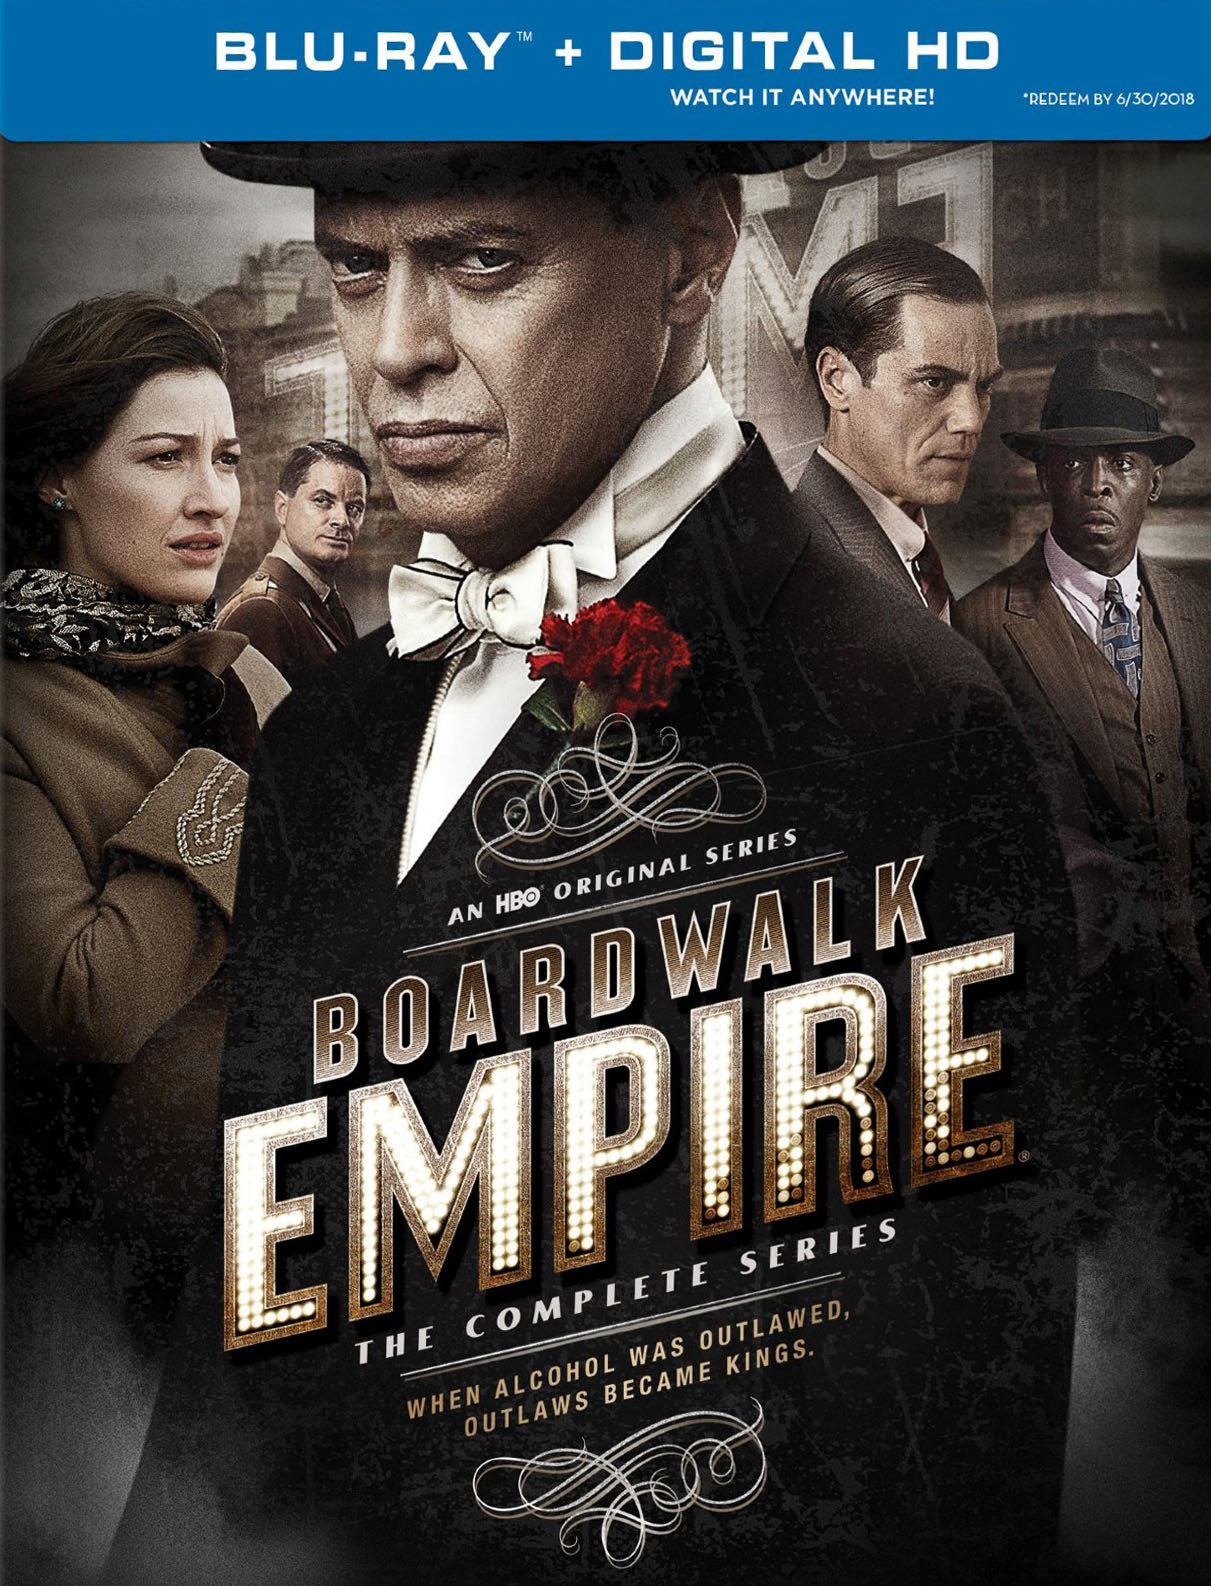 HBO's Boardwalk Empire: The Complete Series Bundle (2010-2014) Vudu HD redemption only